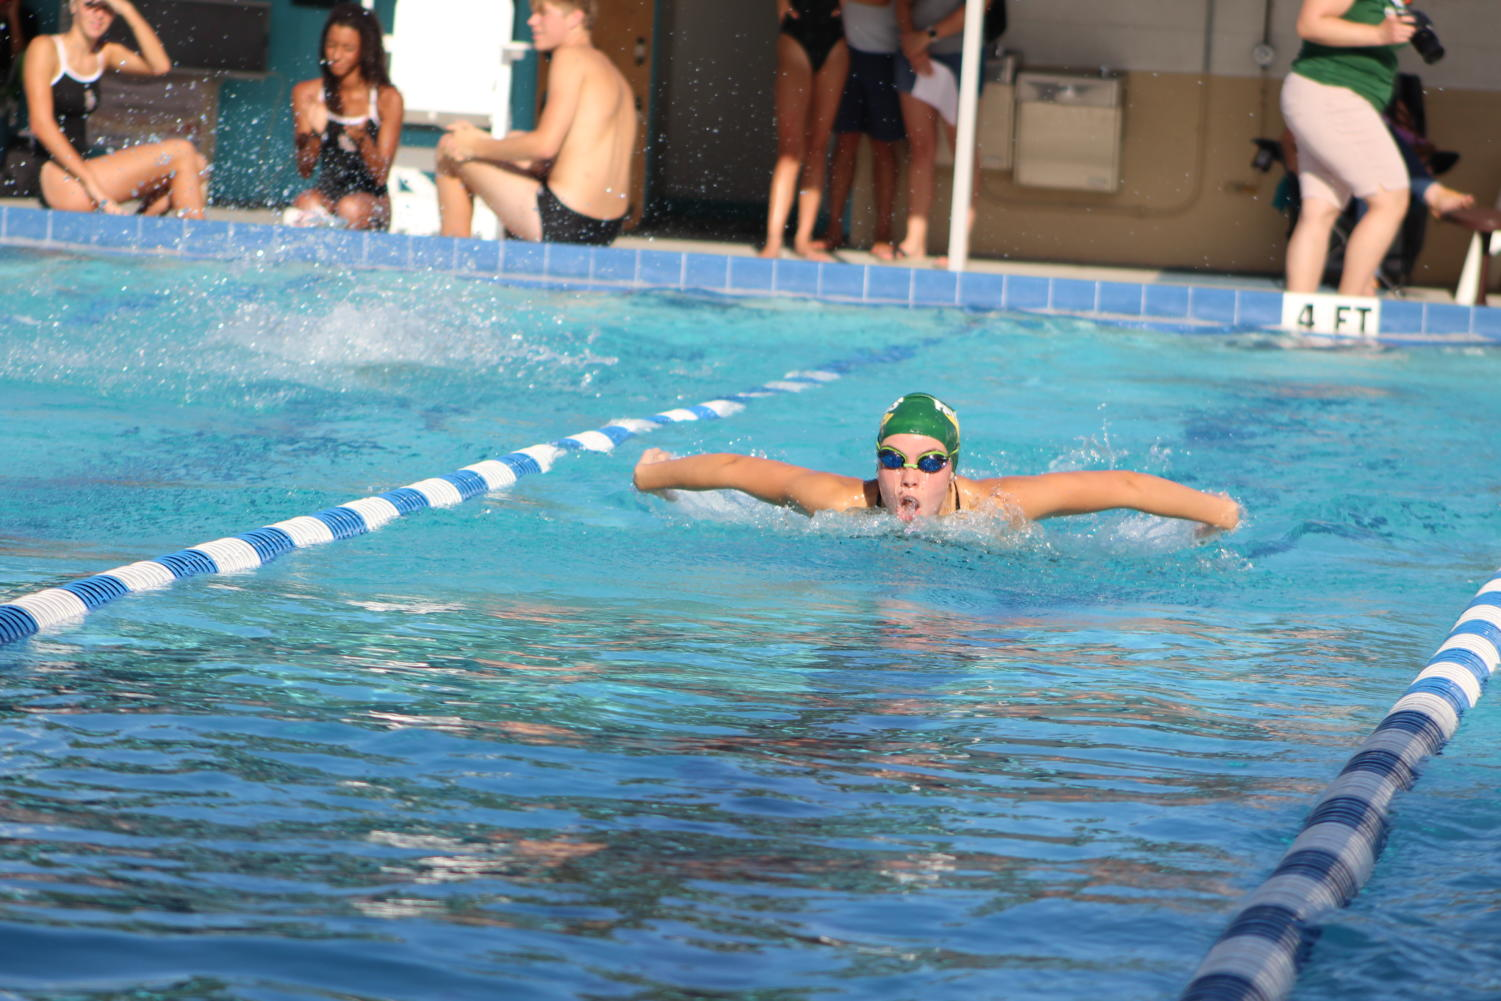 Senior swim team captain Anika Kennedy swims fast in her leg of the 200 medley relay: the 50 fly.